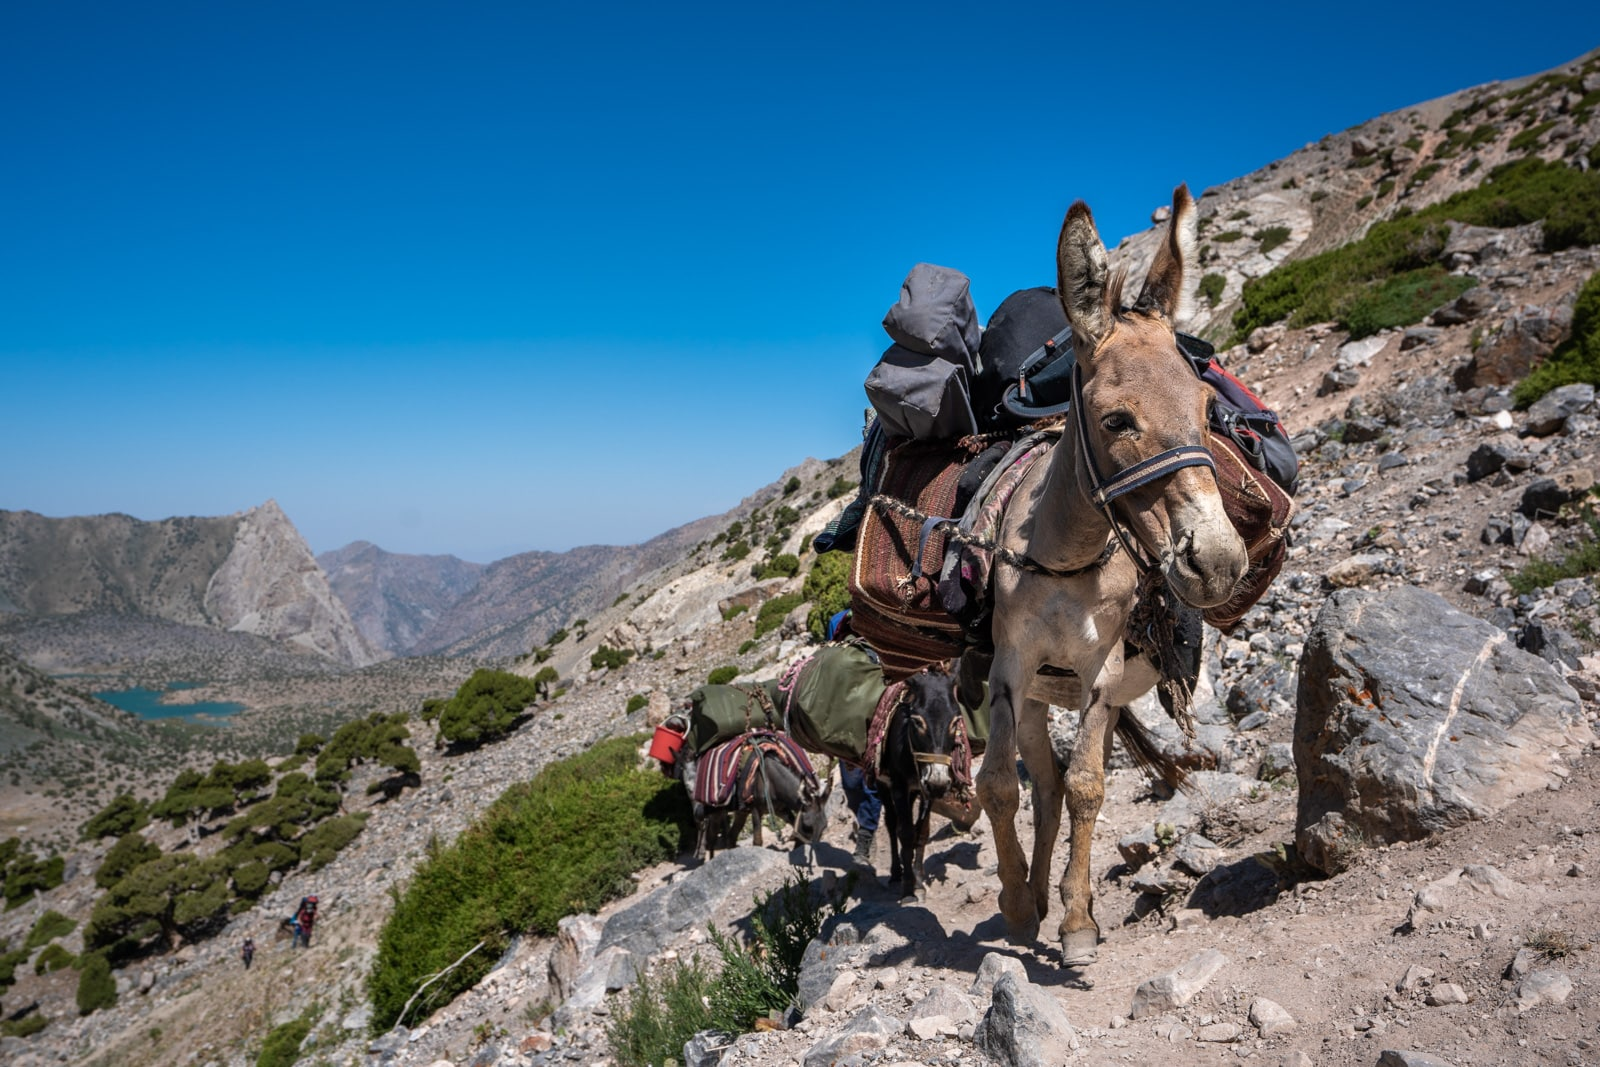 Donkeys carrying trekking gear through Western Tajikistan's Fann Mountains